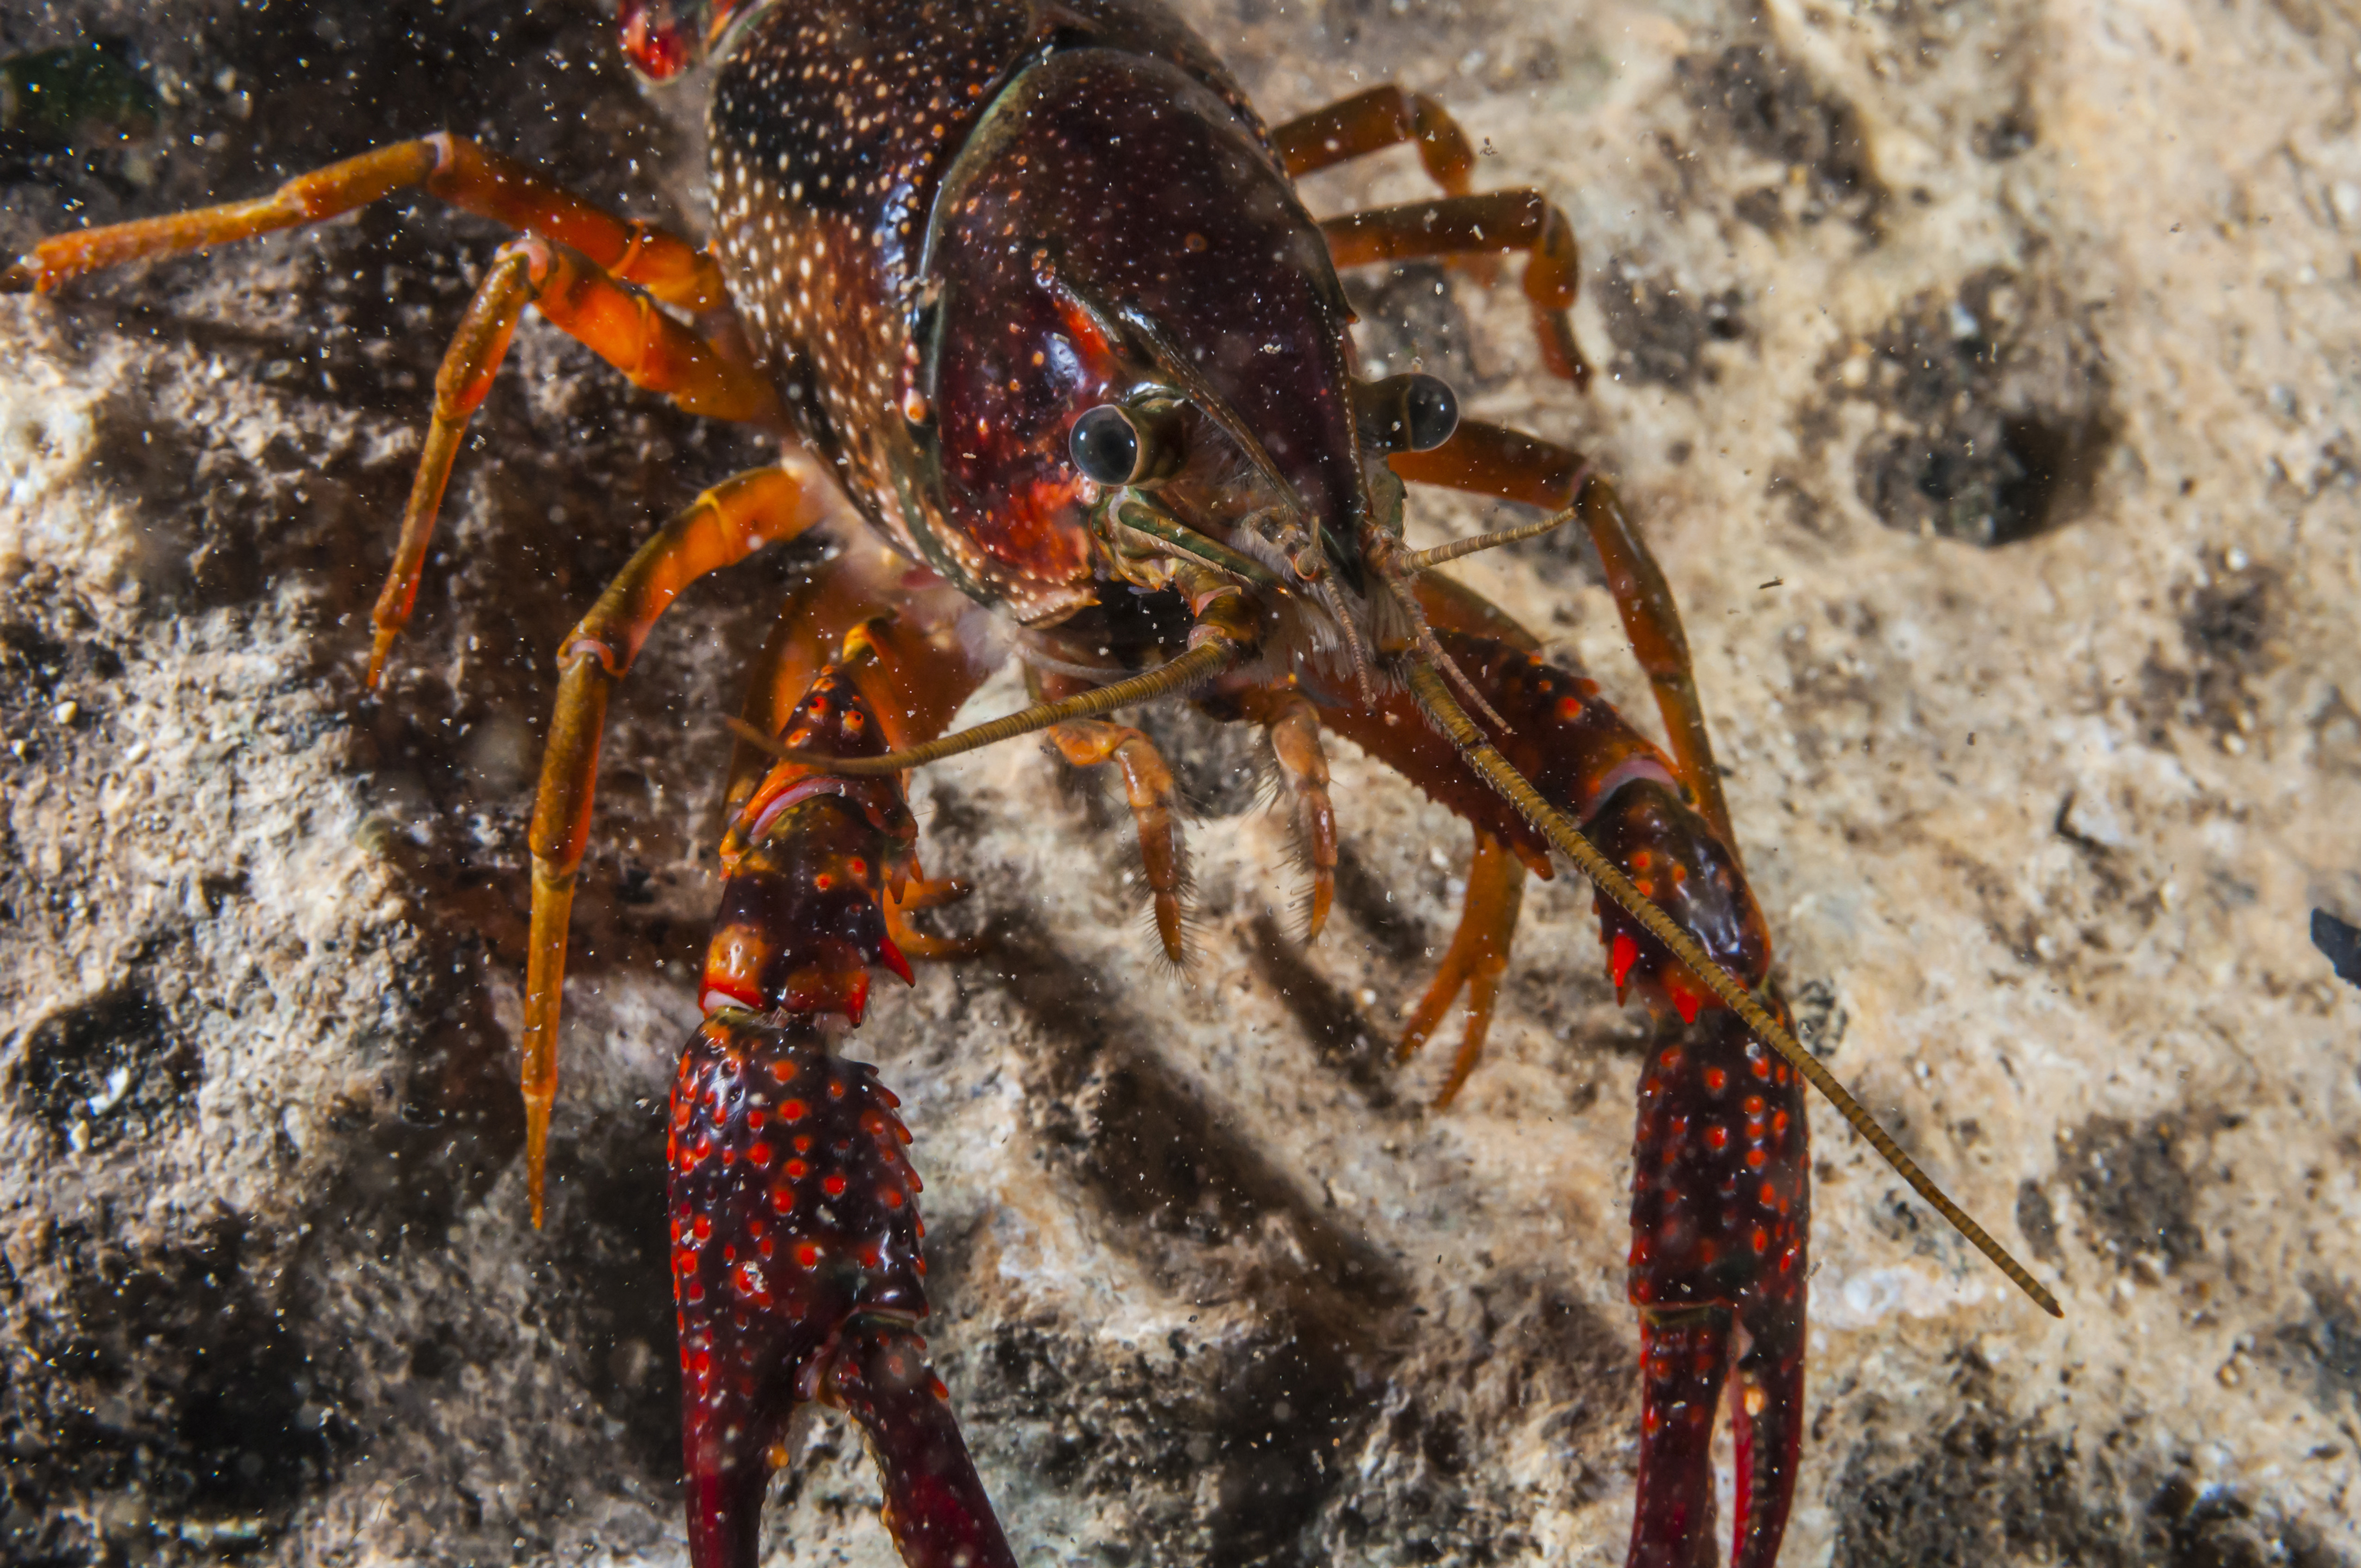 Crawfish close-up during mating season in Jacobs Well Natural Area, Wimberley, Texas.